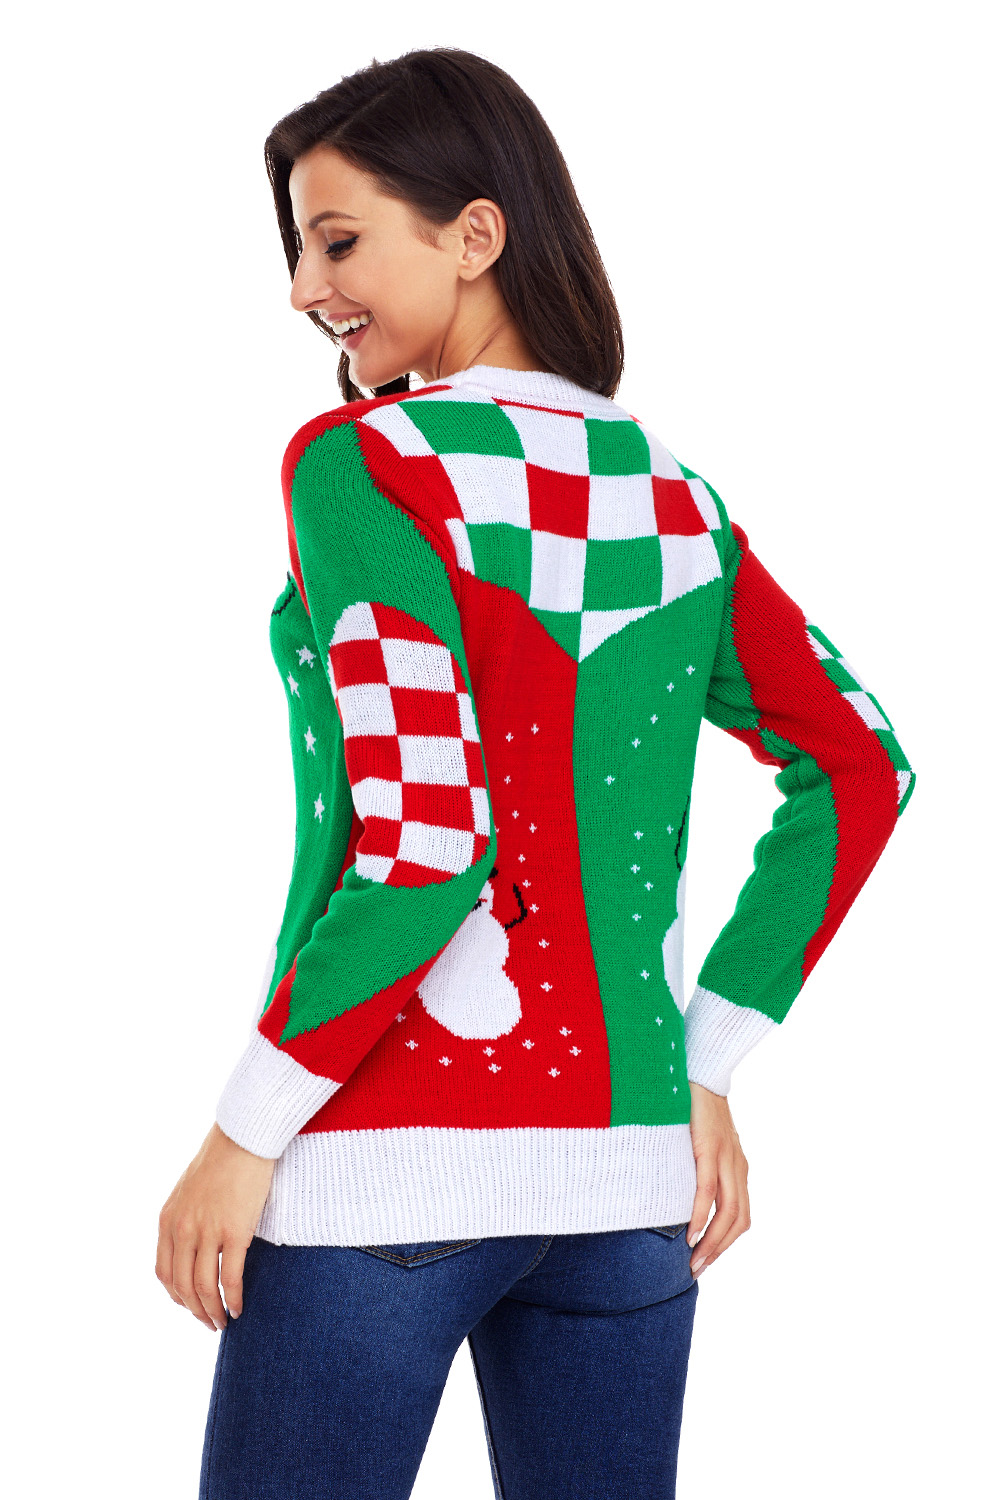 Christmas Sweater Womens.Details About Happy Snowman Green Red Christmas Sweater Womens Autumn Winter Fall Crew Neck